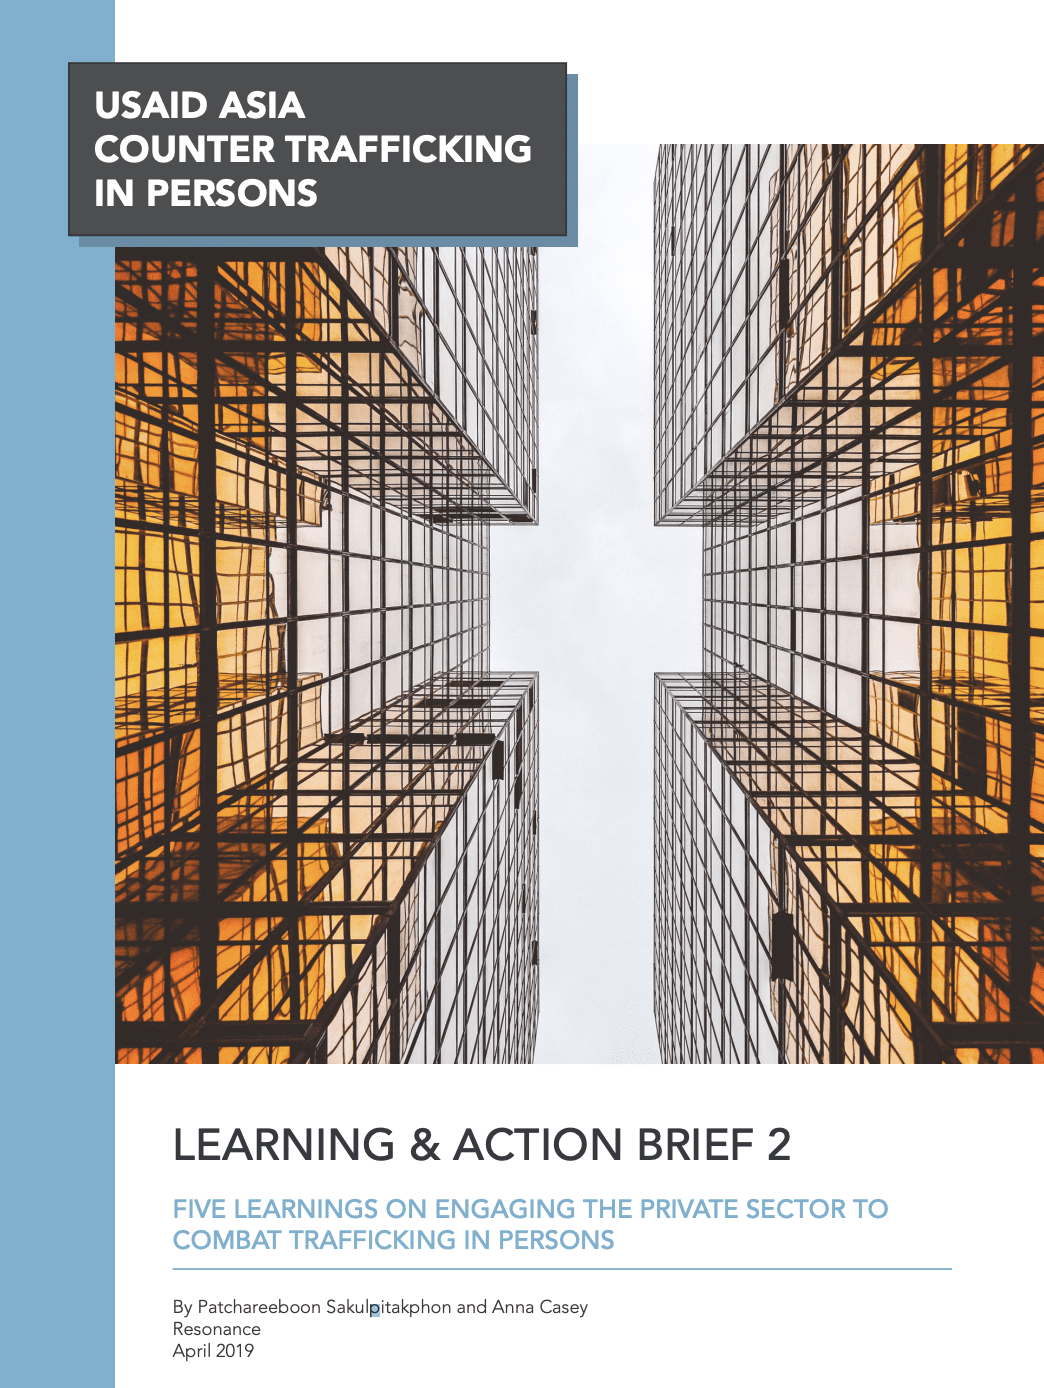 Five Learnings on Engaging the Private Sector to Combat Trafficking in Persons